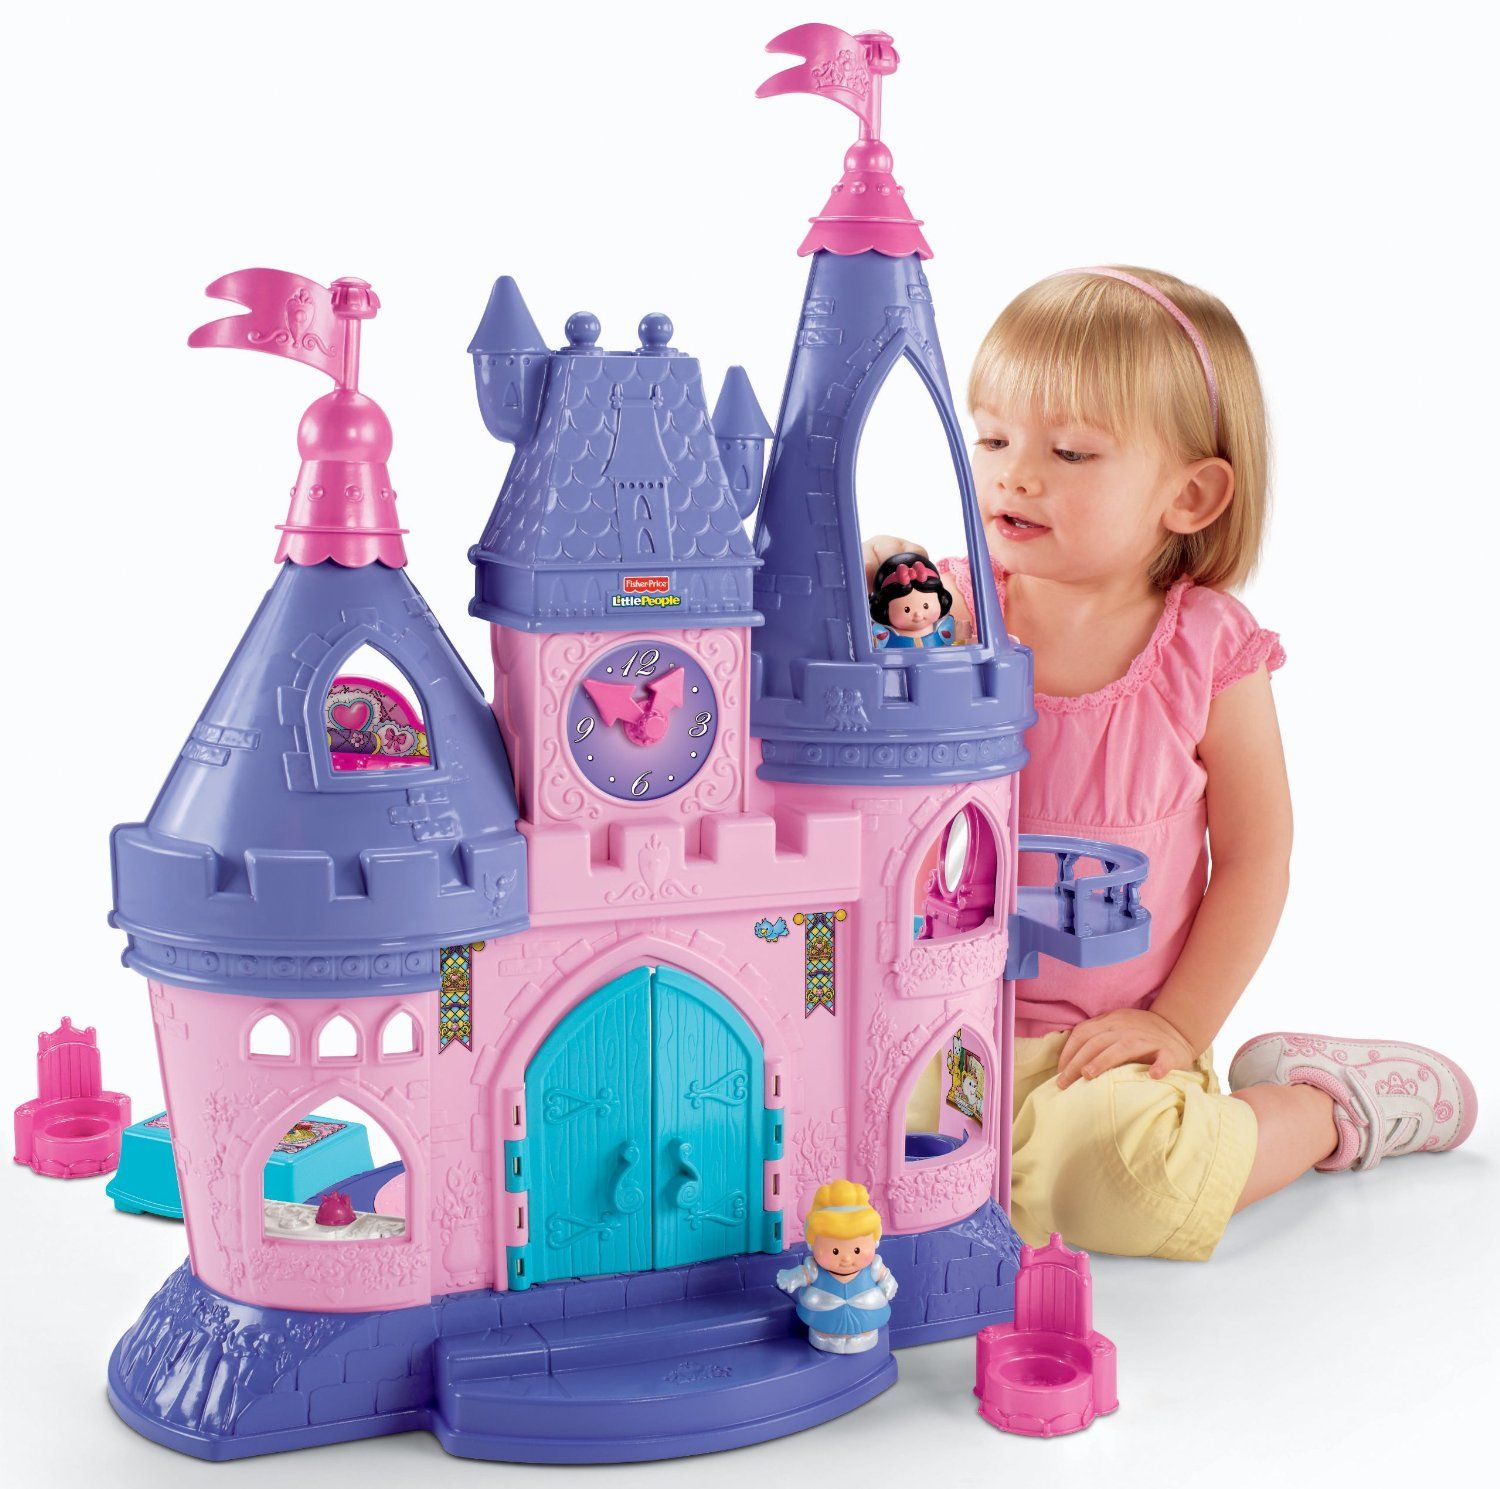 Best Gifts for 2 Year Old Girls in 2017